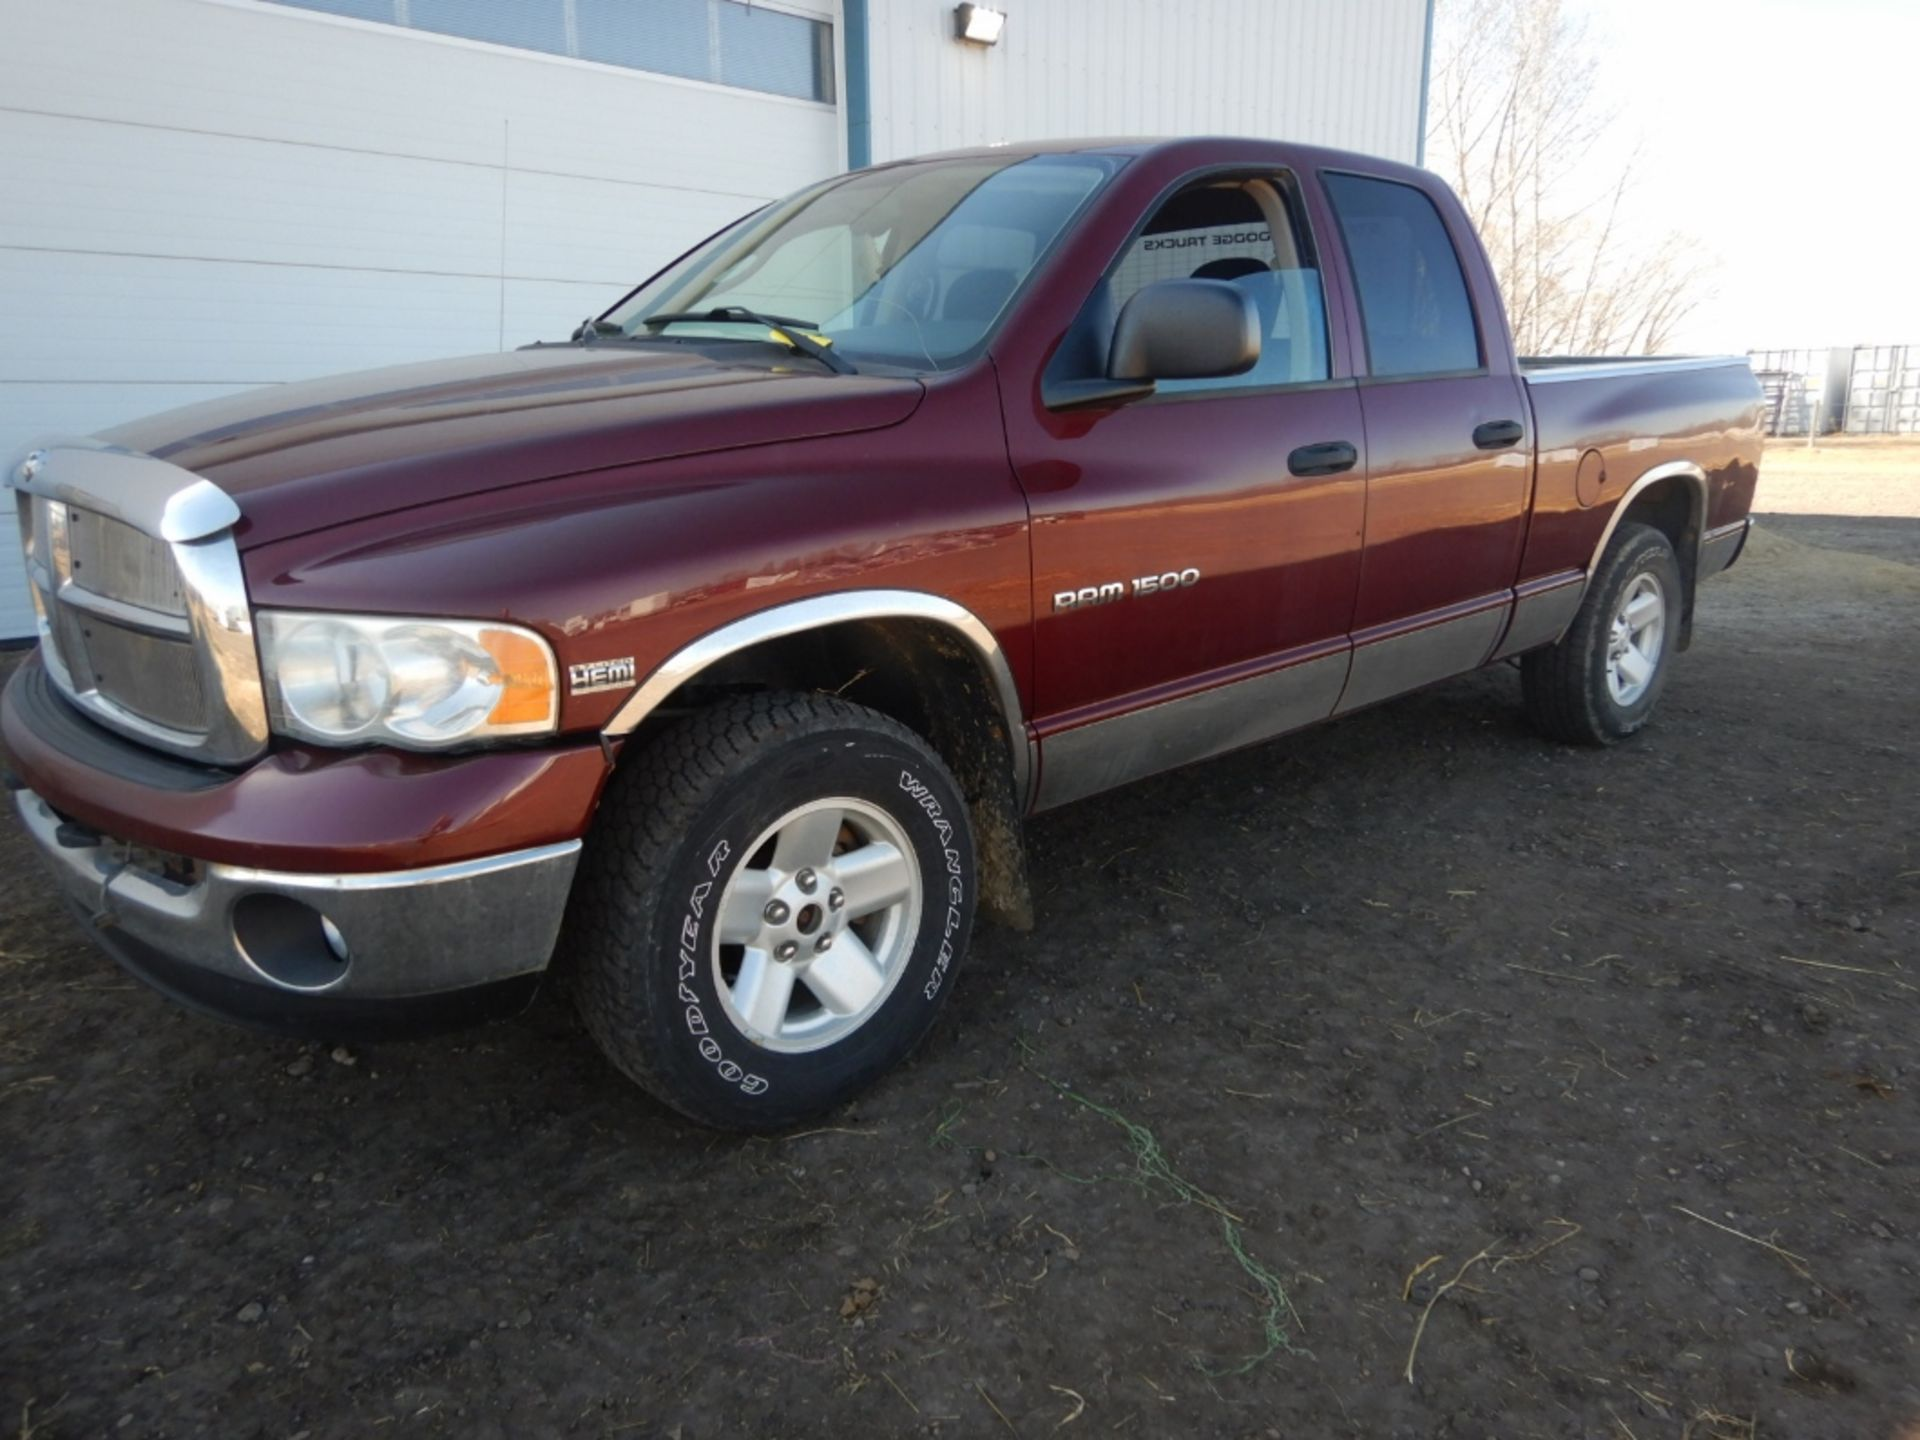 2003 DODGE RAM 1500 PICKUP, GAS, CREW CAB, SHORT BOX, AT, 248,000KM'S SHOWING, S/N - Image 4 of 11